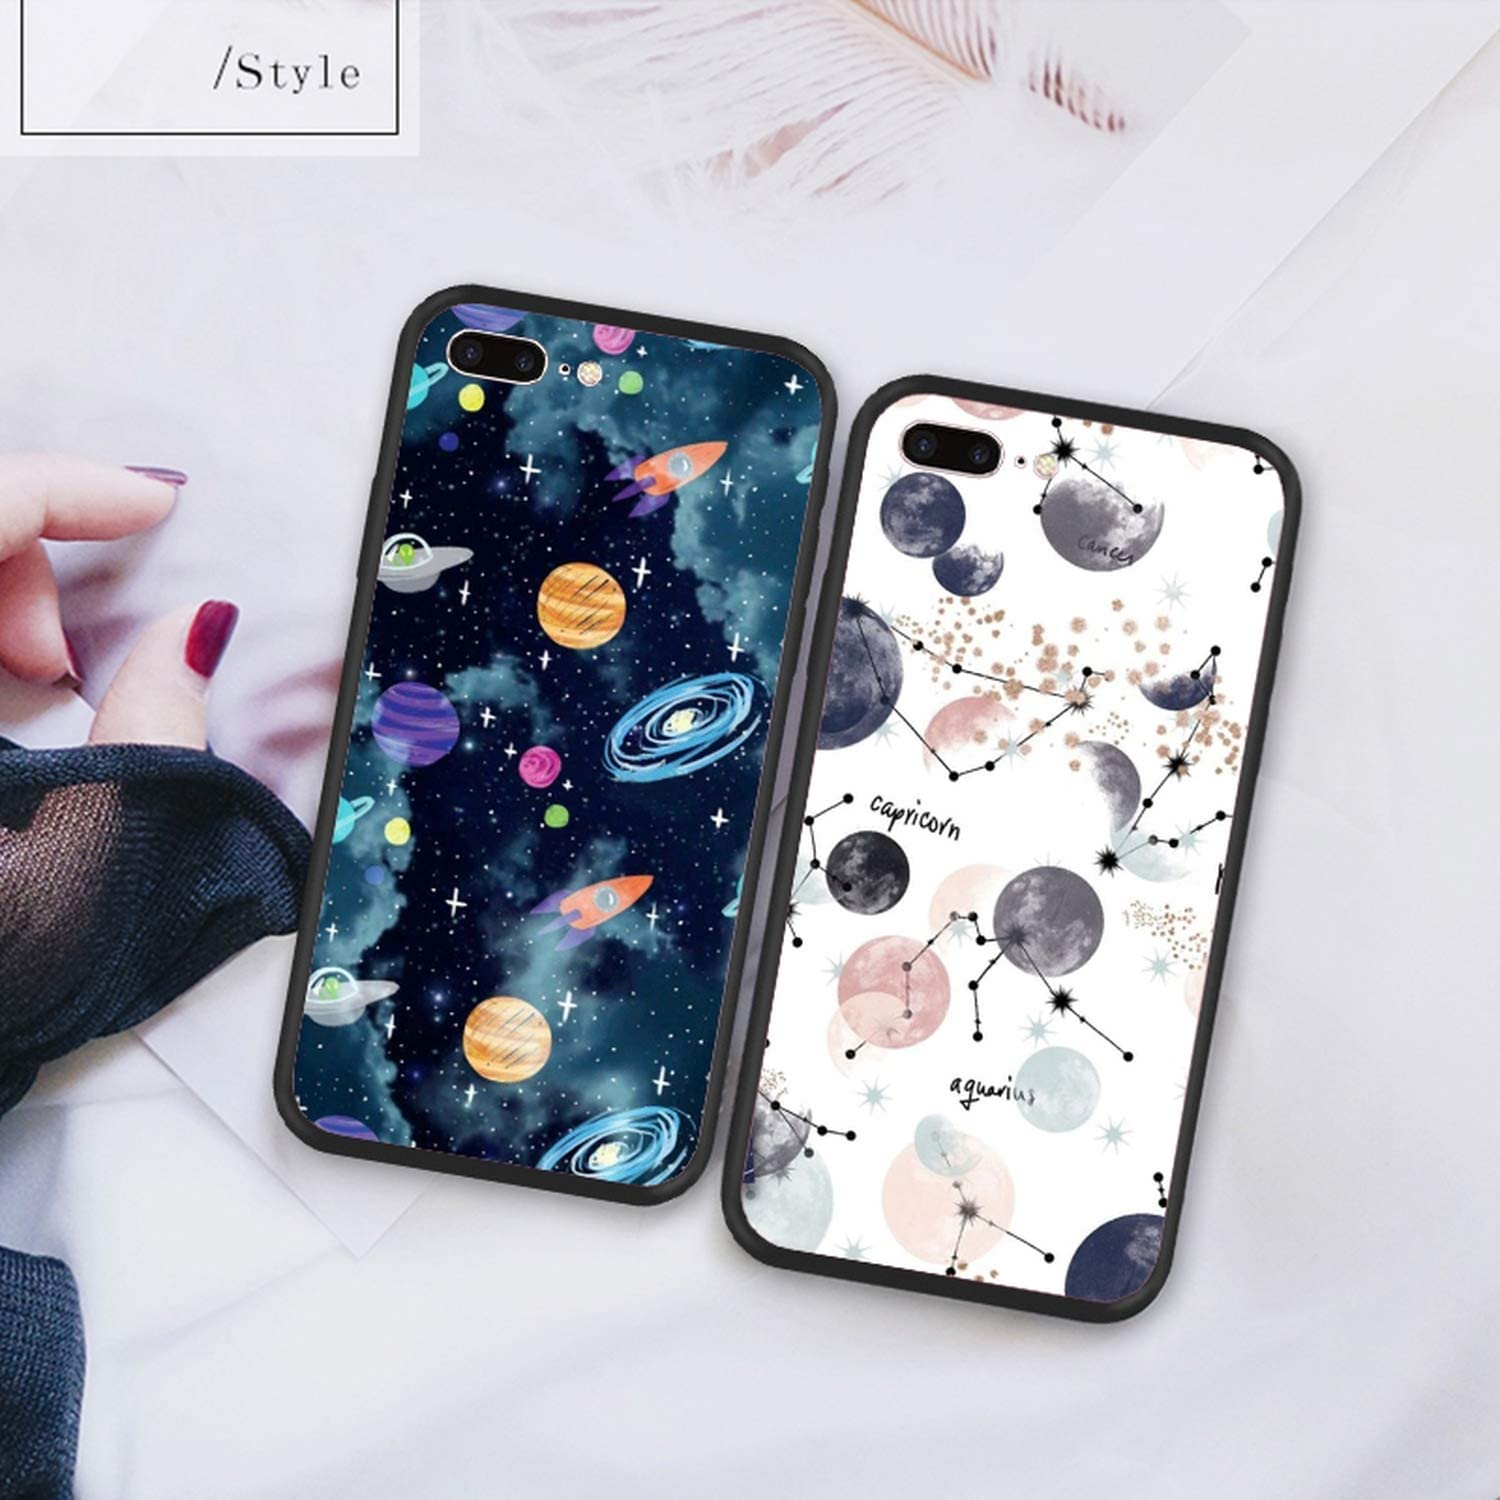 Planetary Party iPhone 11 case